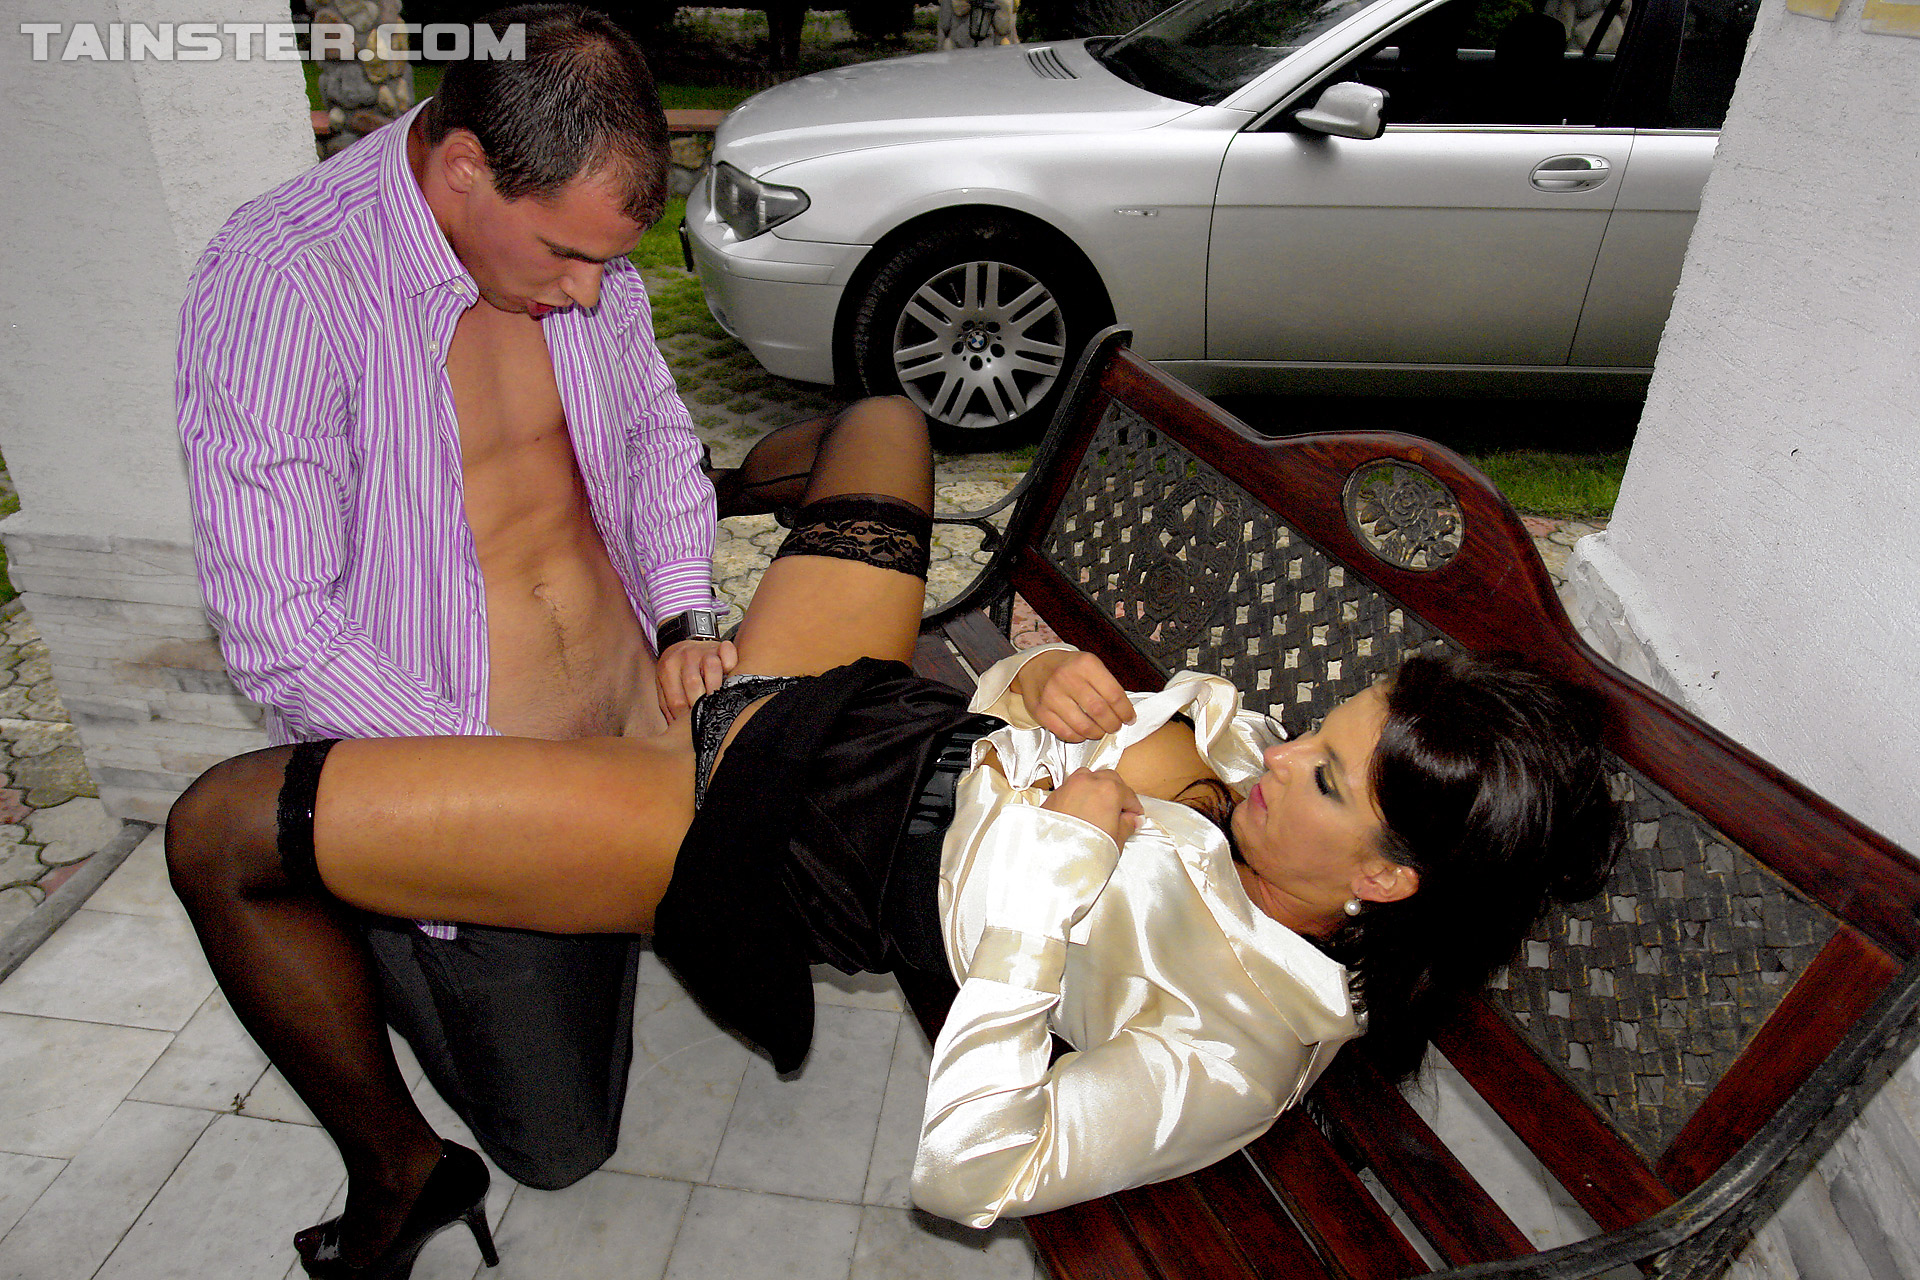 Fully Clothed Babe Shagging Chap - Mobile Porn Movies-6469